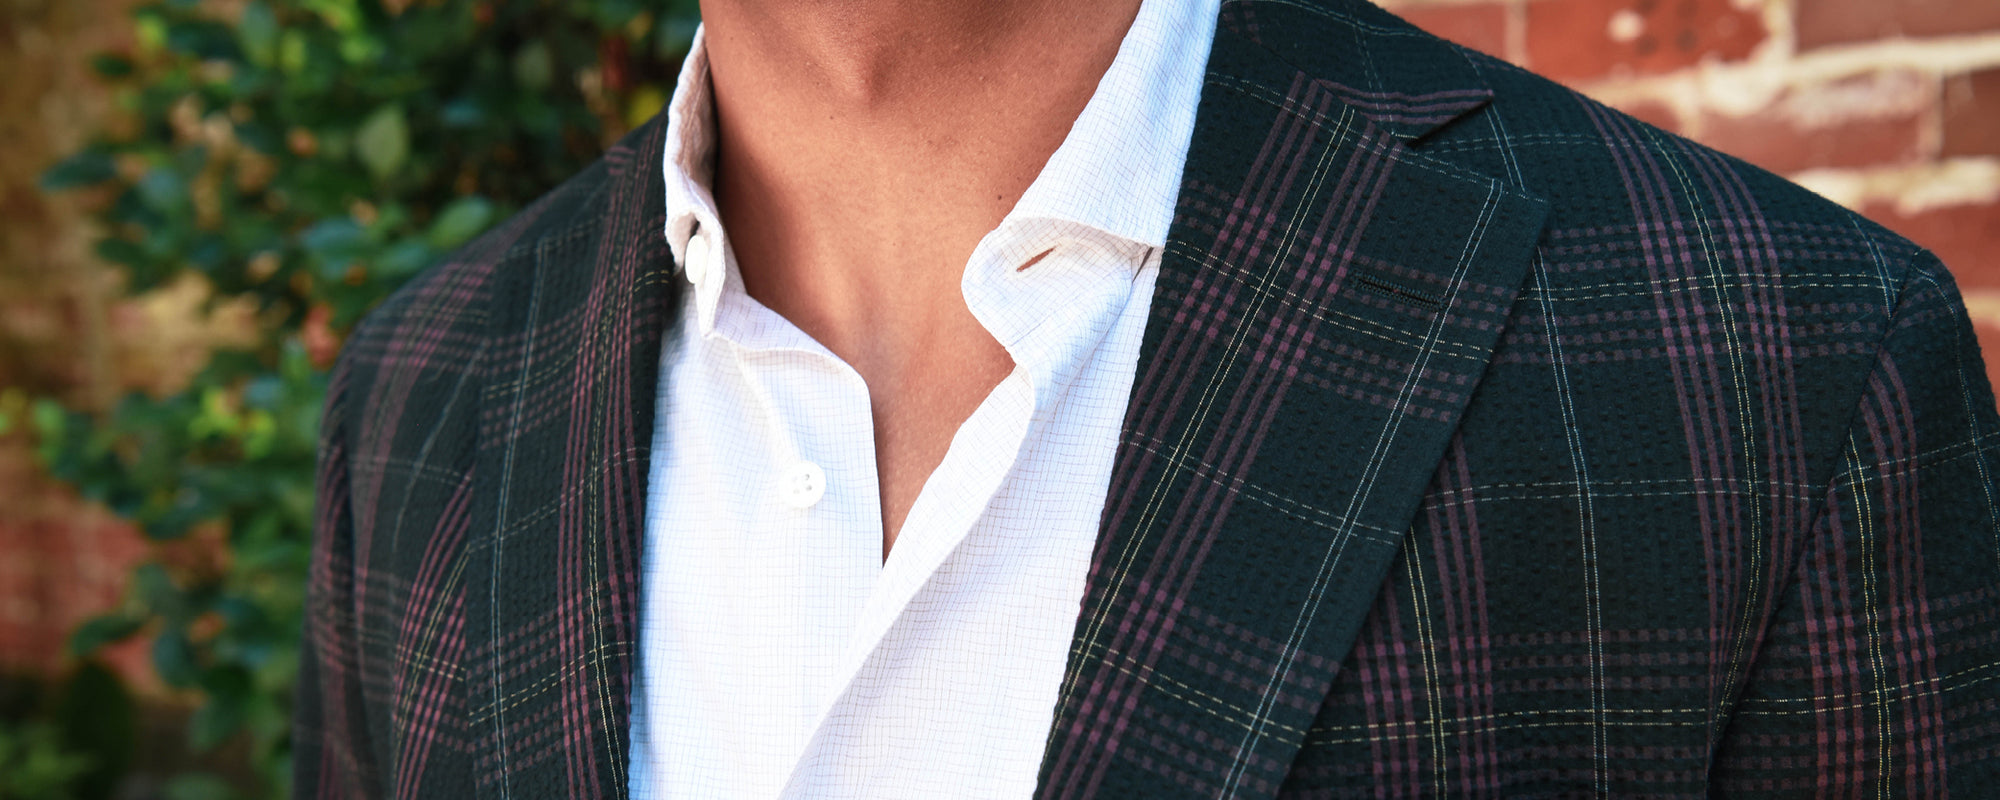 Jazzed Plaid Seersucker from Haspel. The originator of the seersucker suit.